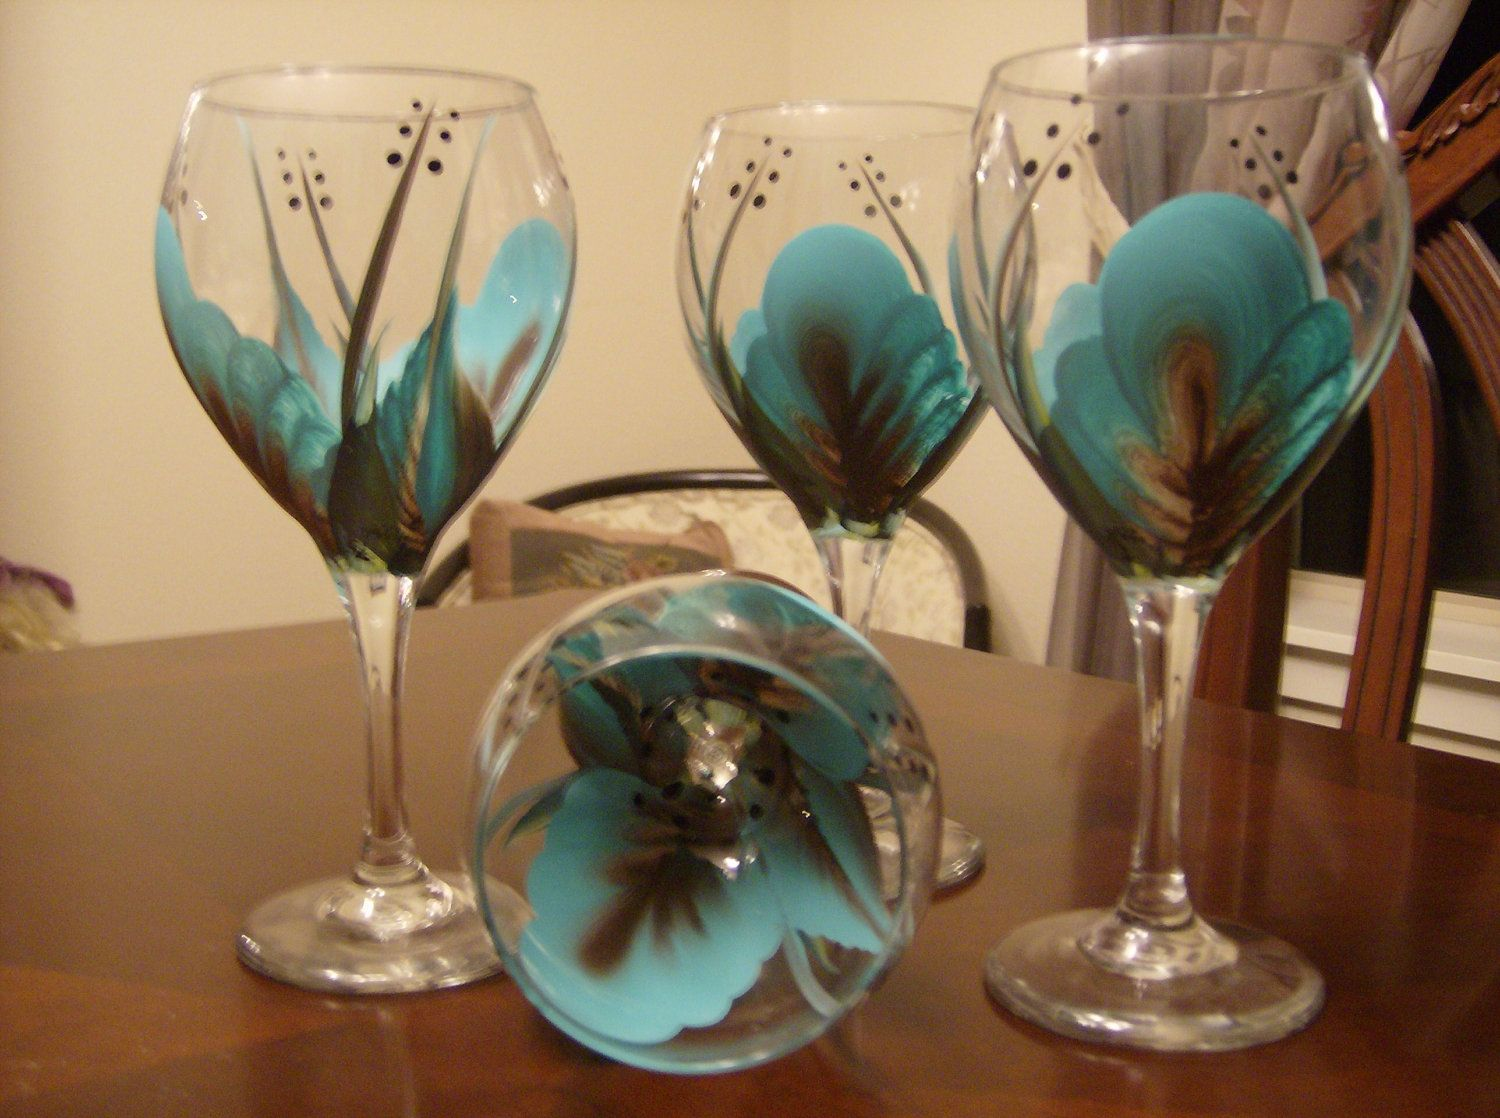 Wine Glass Design Ideas 16 useful diy ideas how to decorate wine glass Easy Wine Glass Painting Ideas Google Search